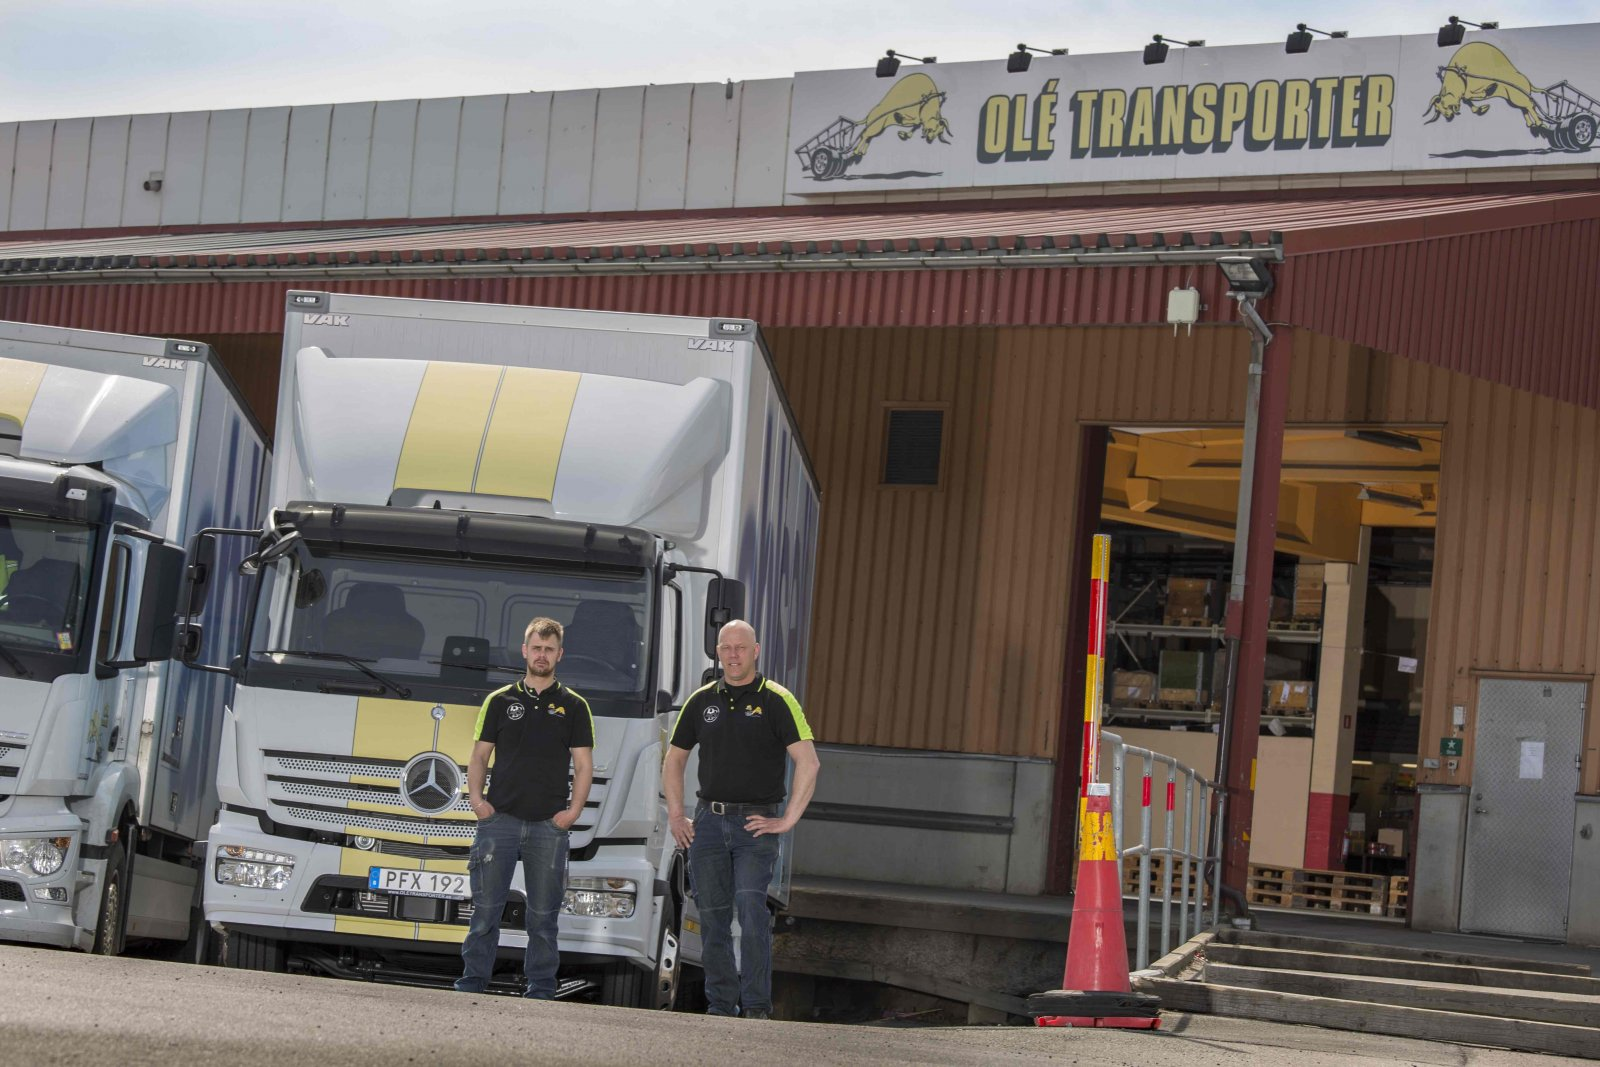 Olé Transporter. Foto: Therese Granbacke